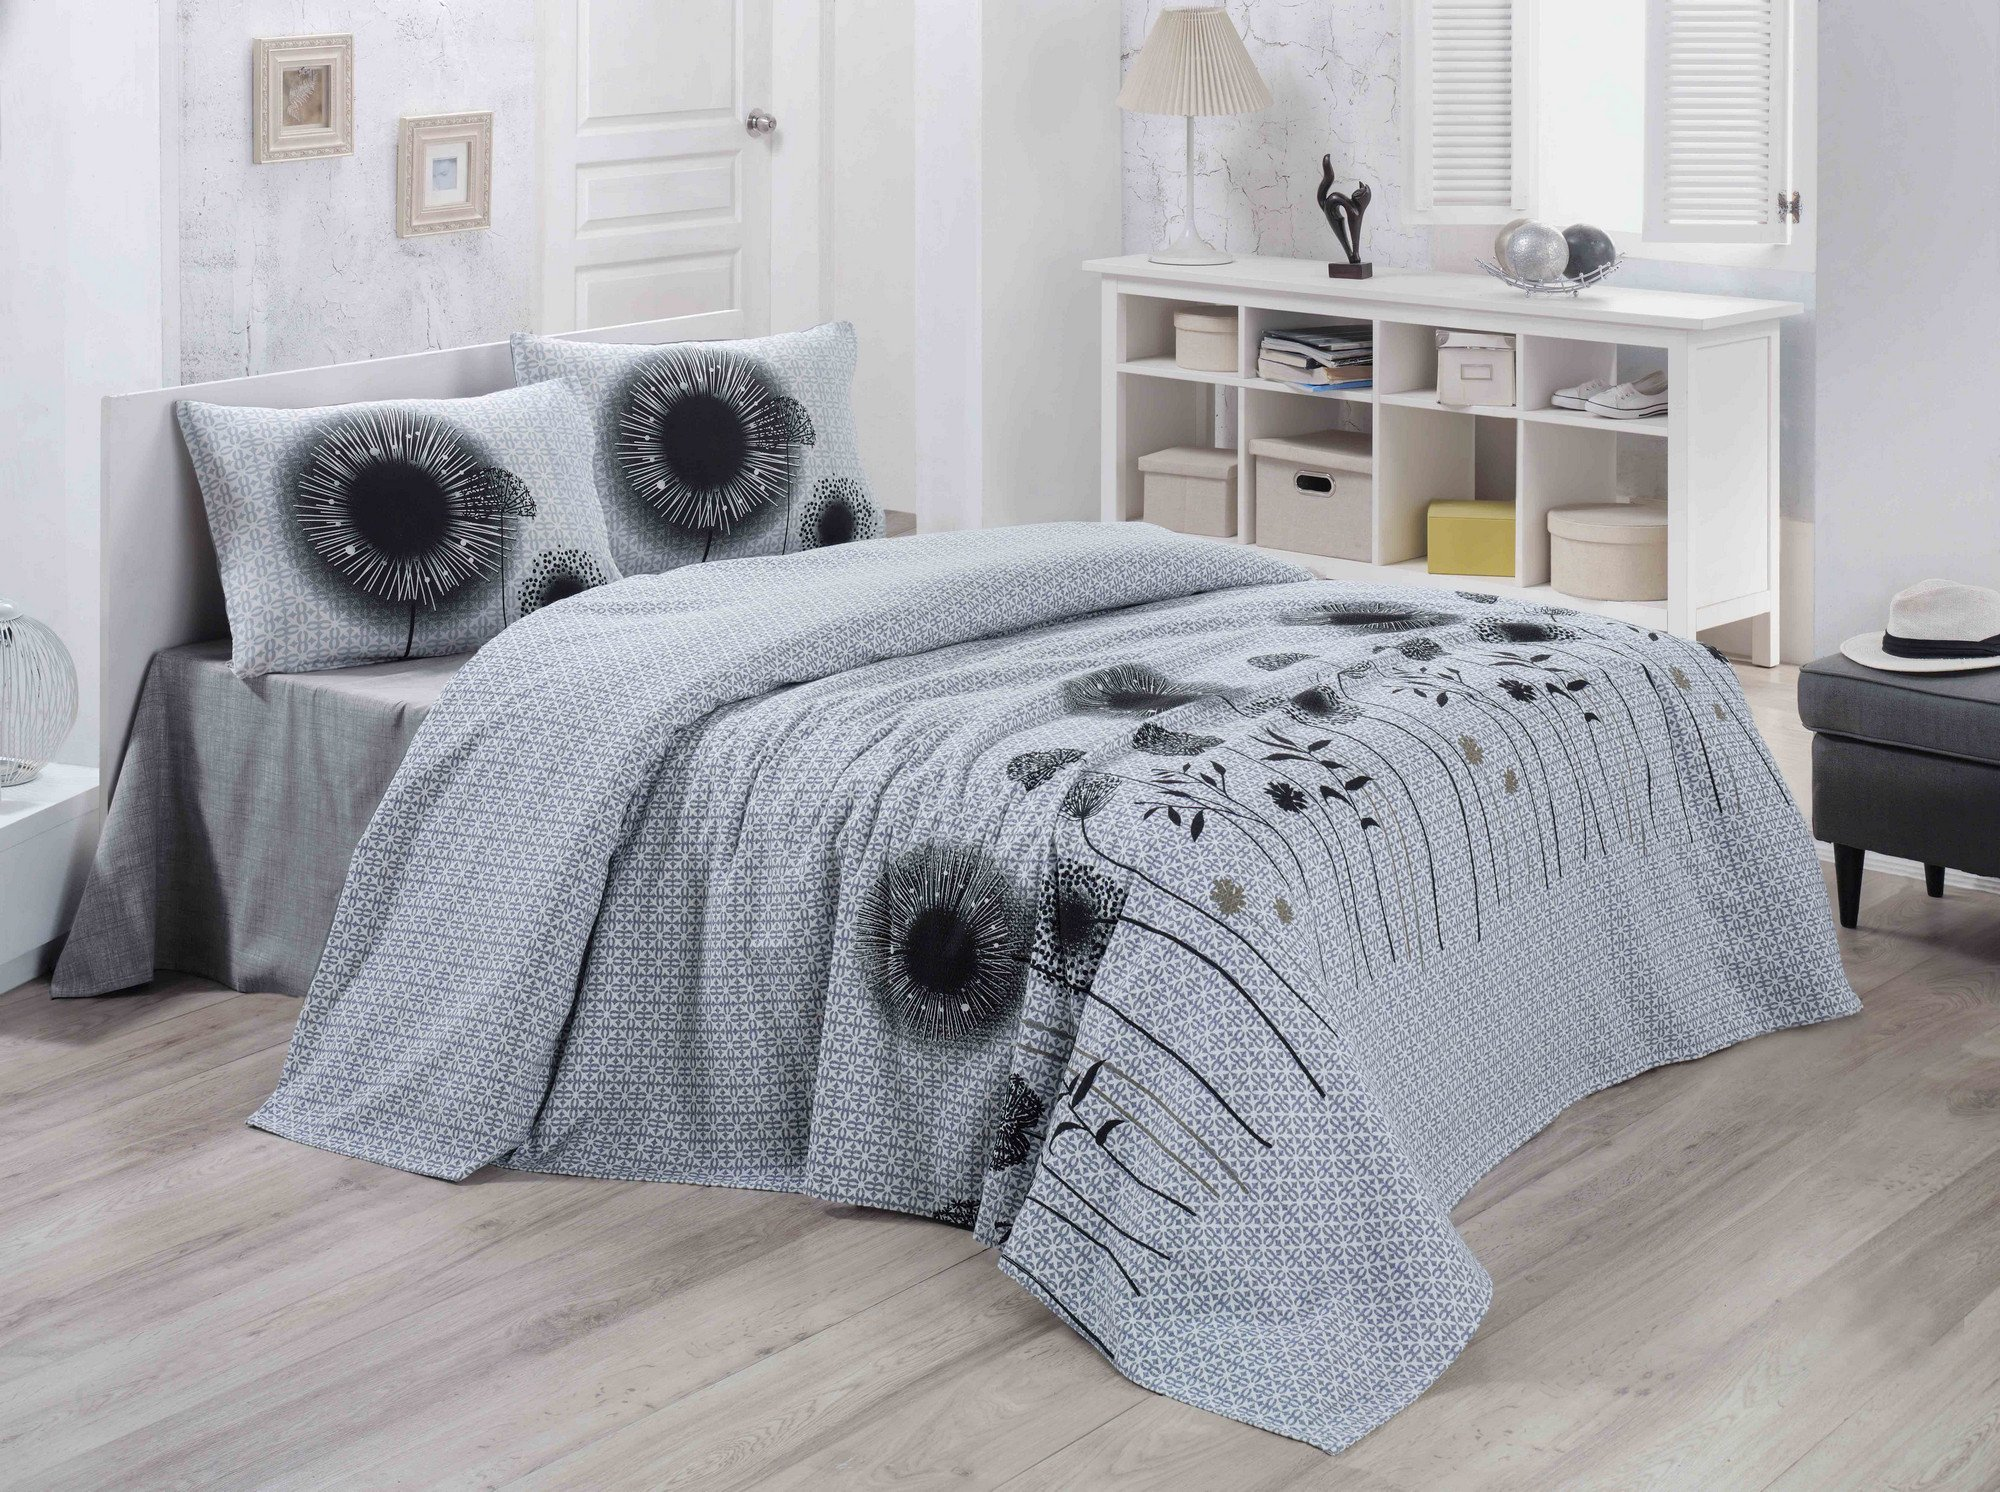 LaModaHome Design Coverlet, 100% Cotton - Black and White Flowers, Leaf, Patterned - Size (78.7'' x 90.6'') for Queen/Full Bed